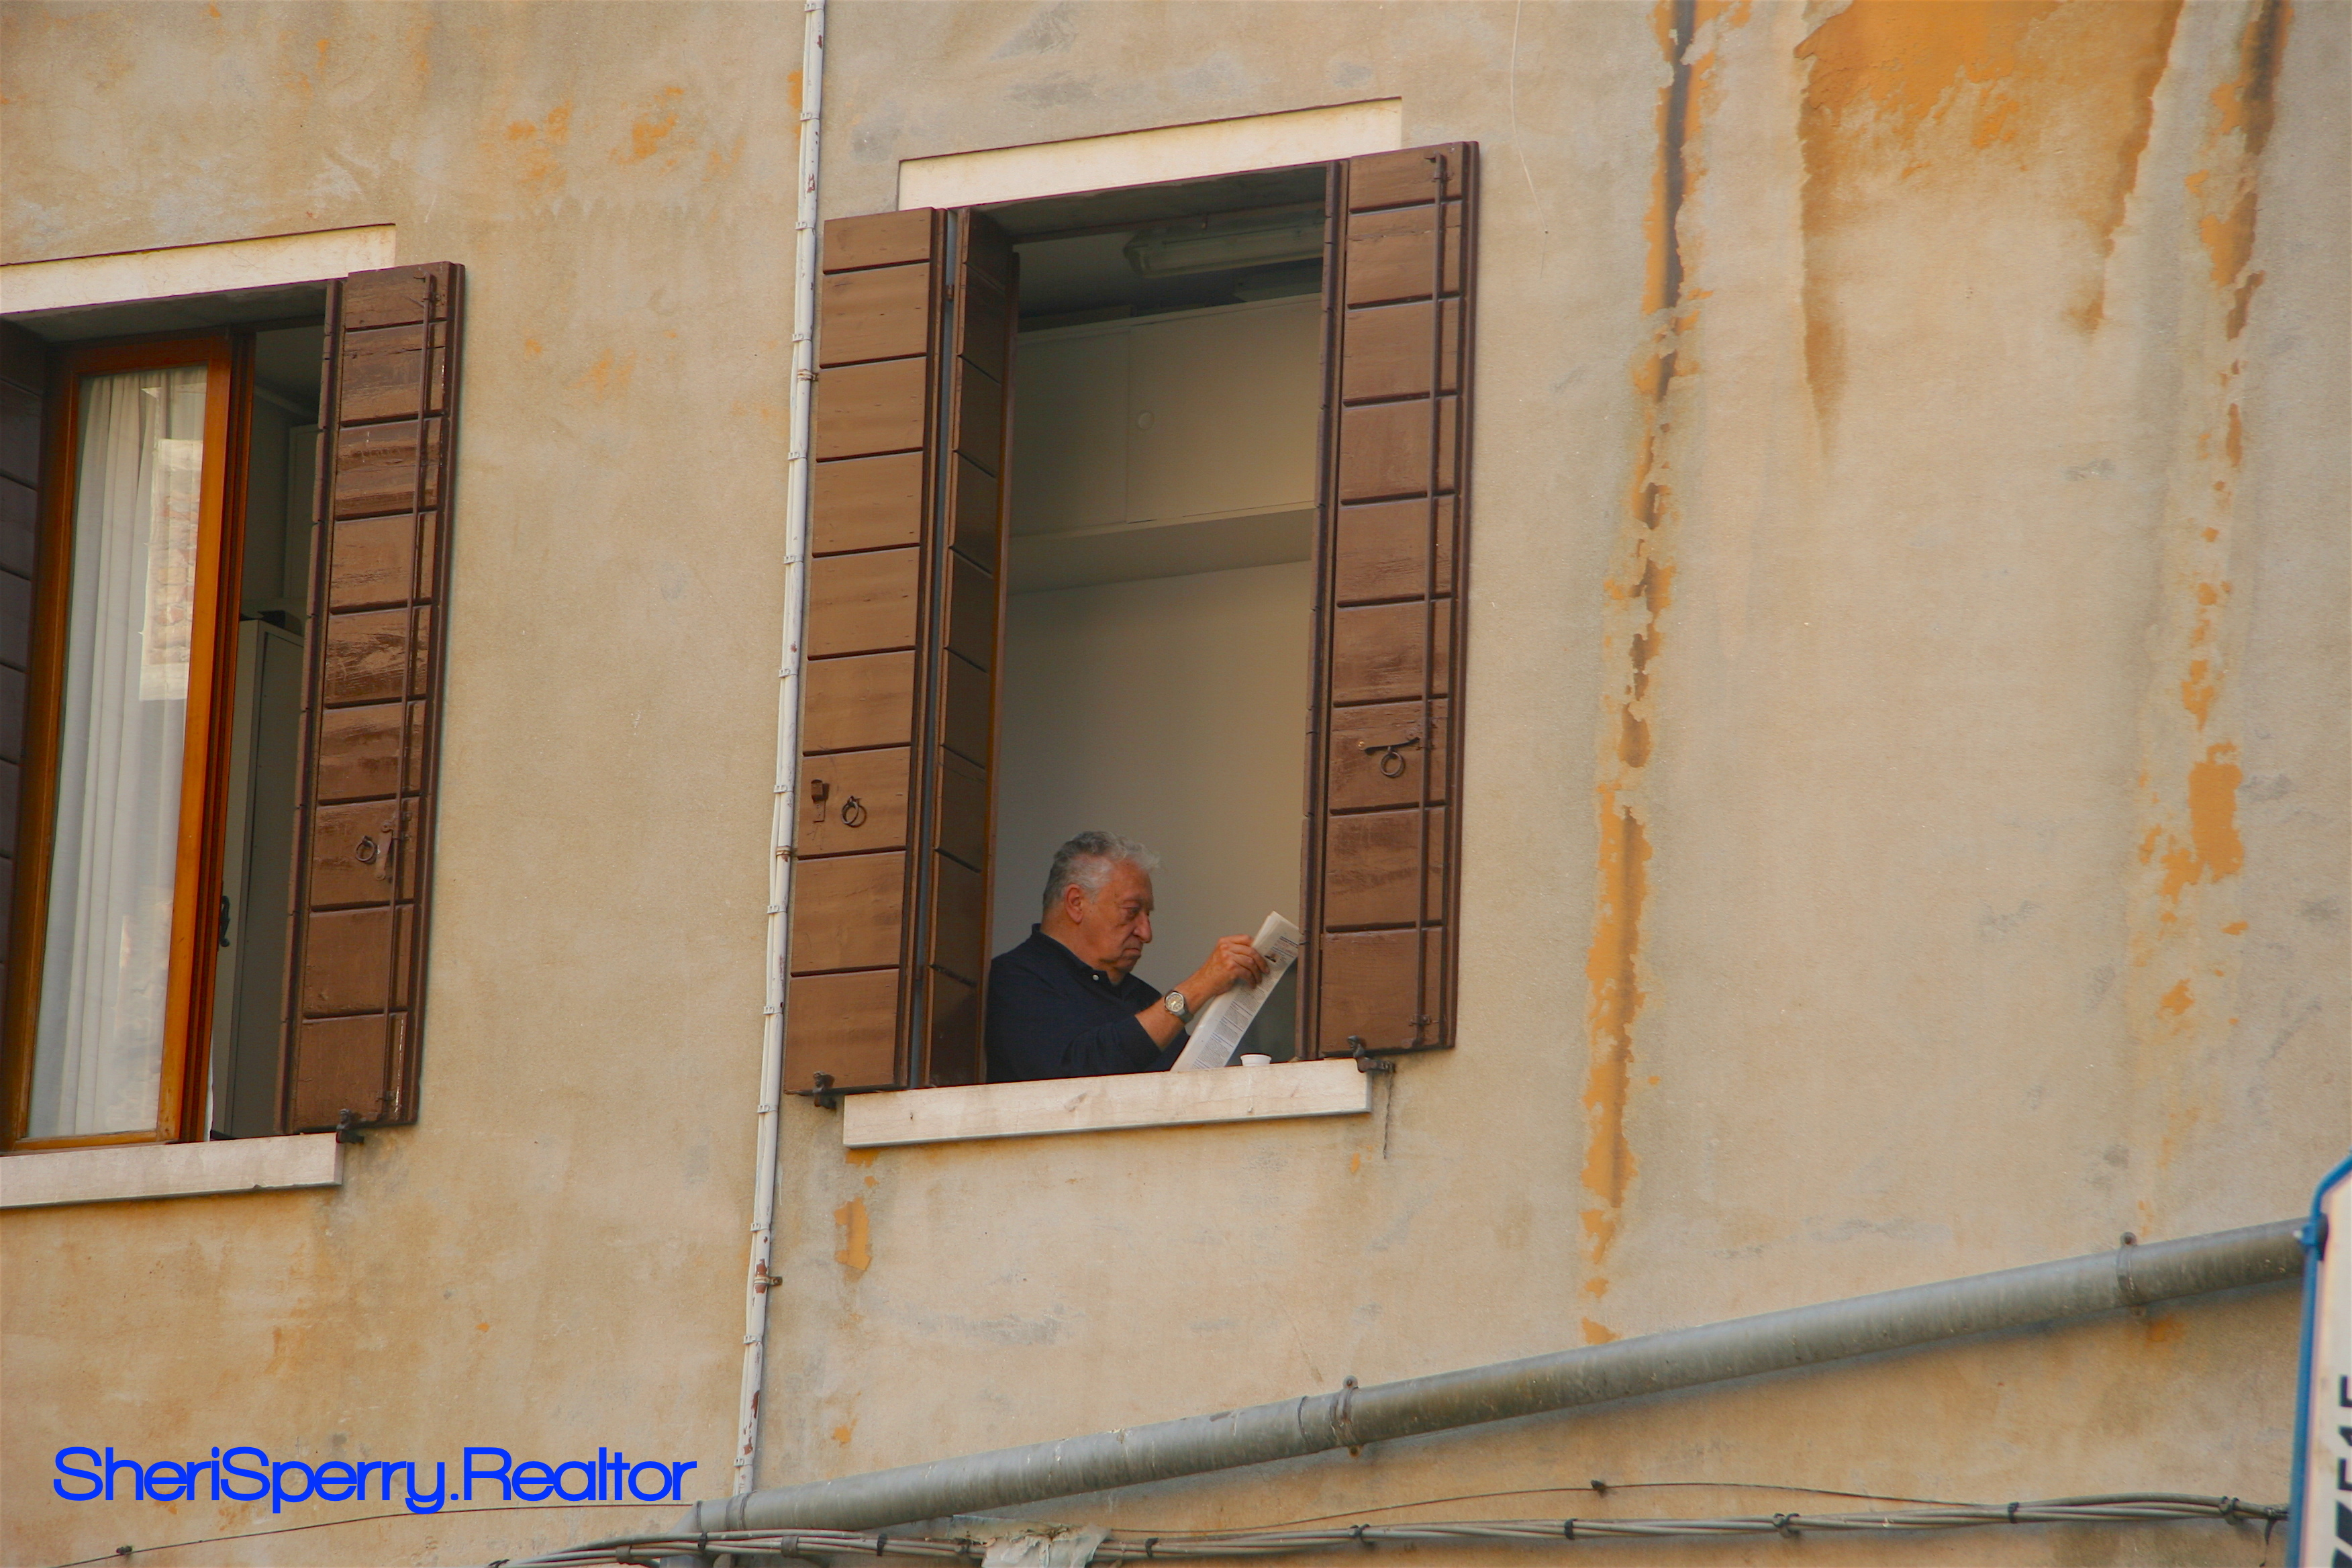 Venice - Man In A Window